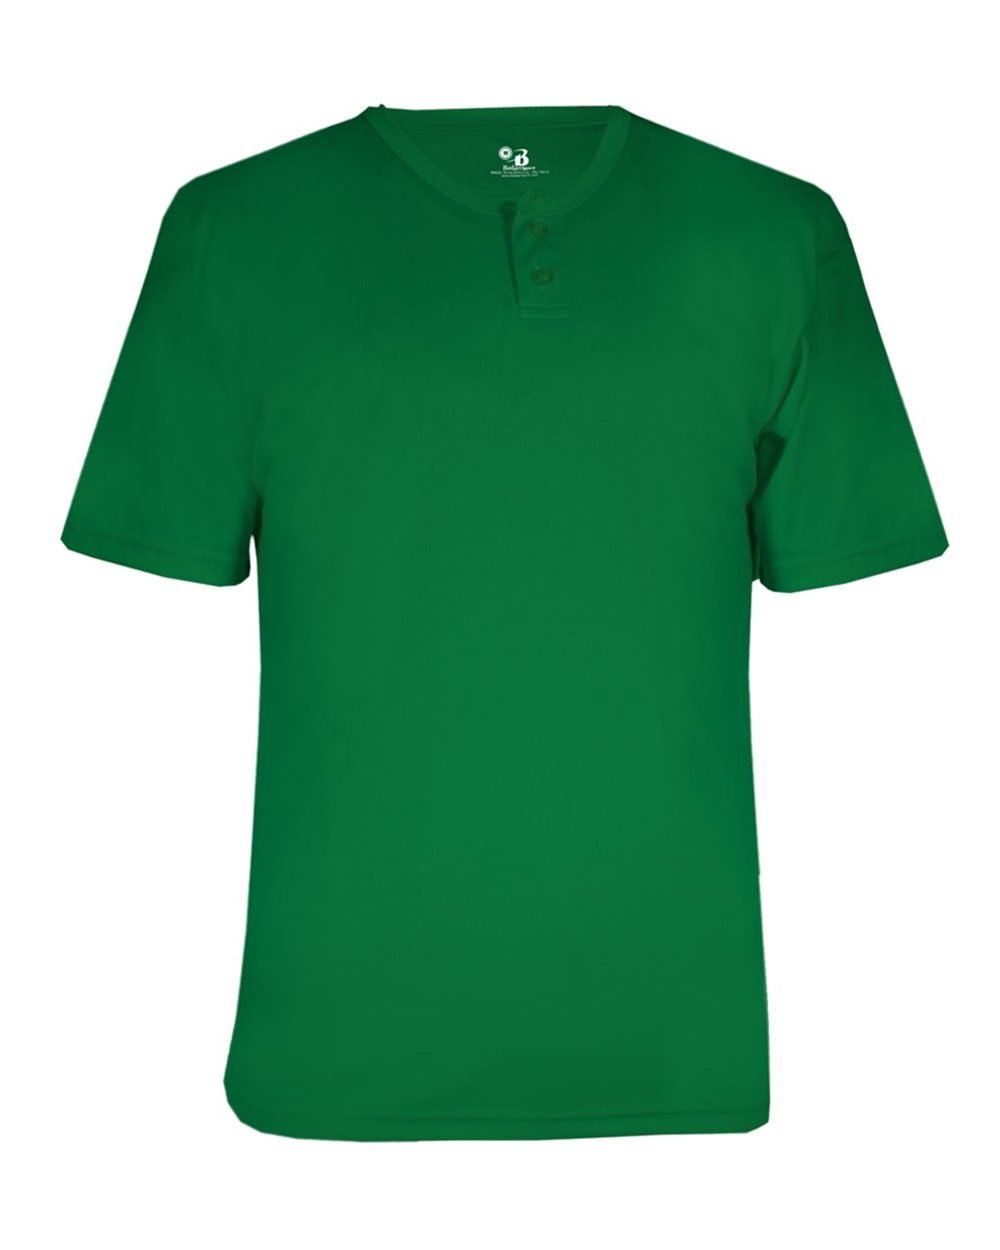 Badger Men's Two-Button Placket Performance Jersey, KELLY GREEN, M